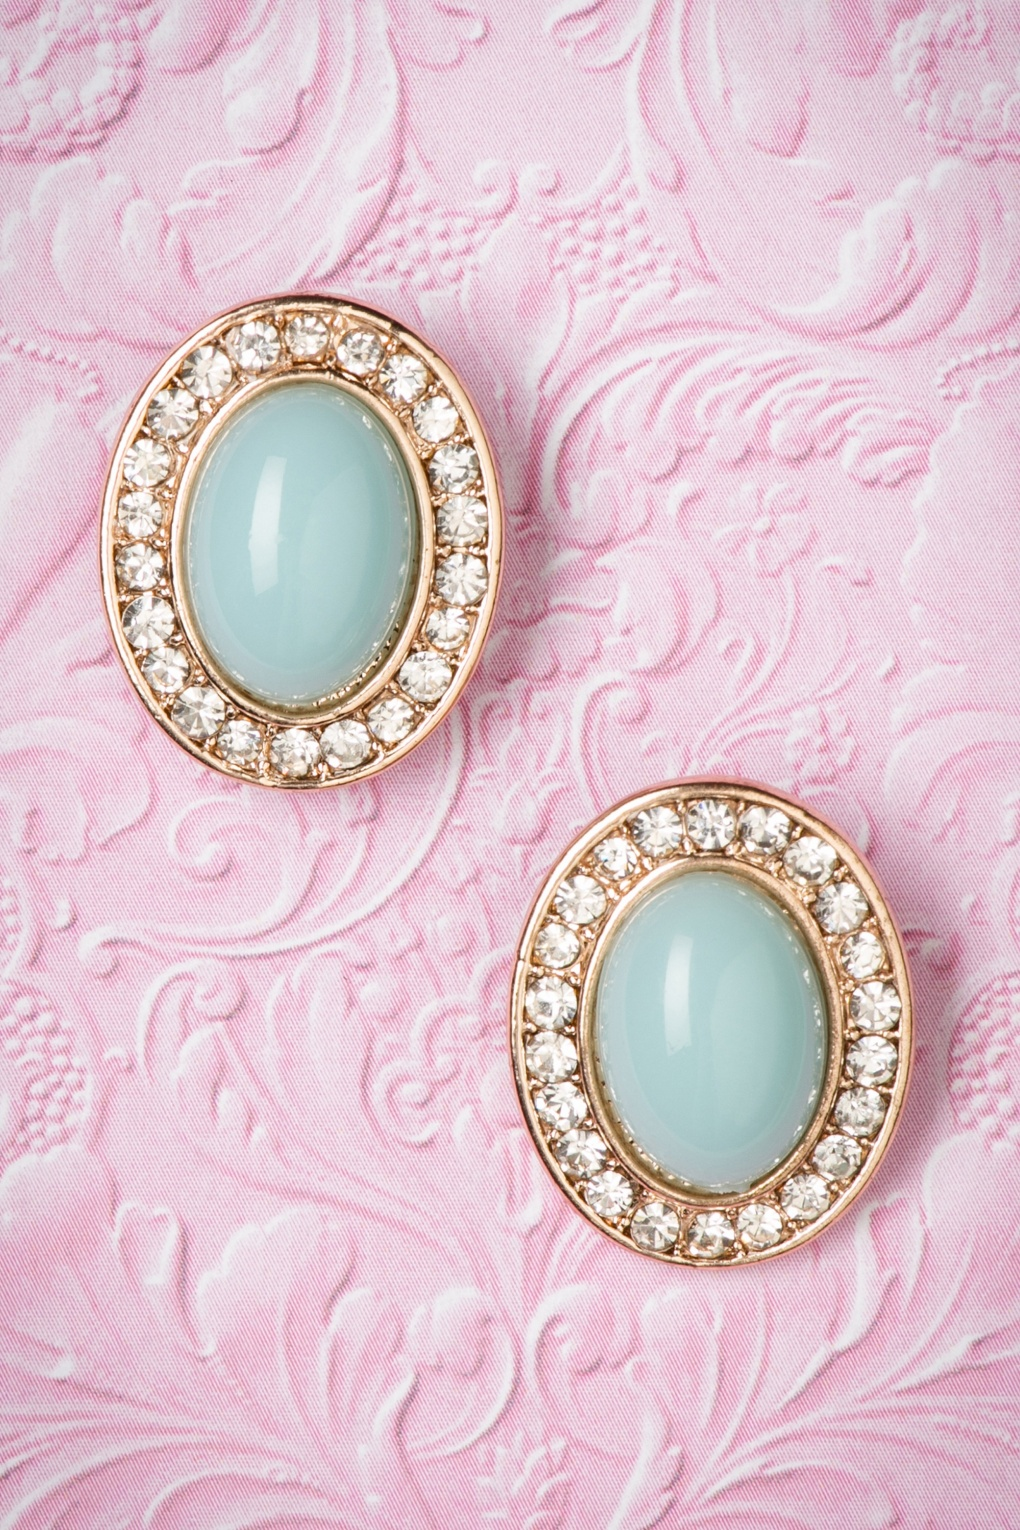 1950s Costume Jewelry 50s Mint Green Gemstone with Diamonds Studs £11.00 AT vintagedancer.com